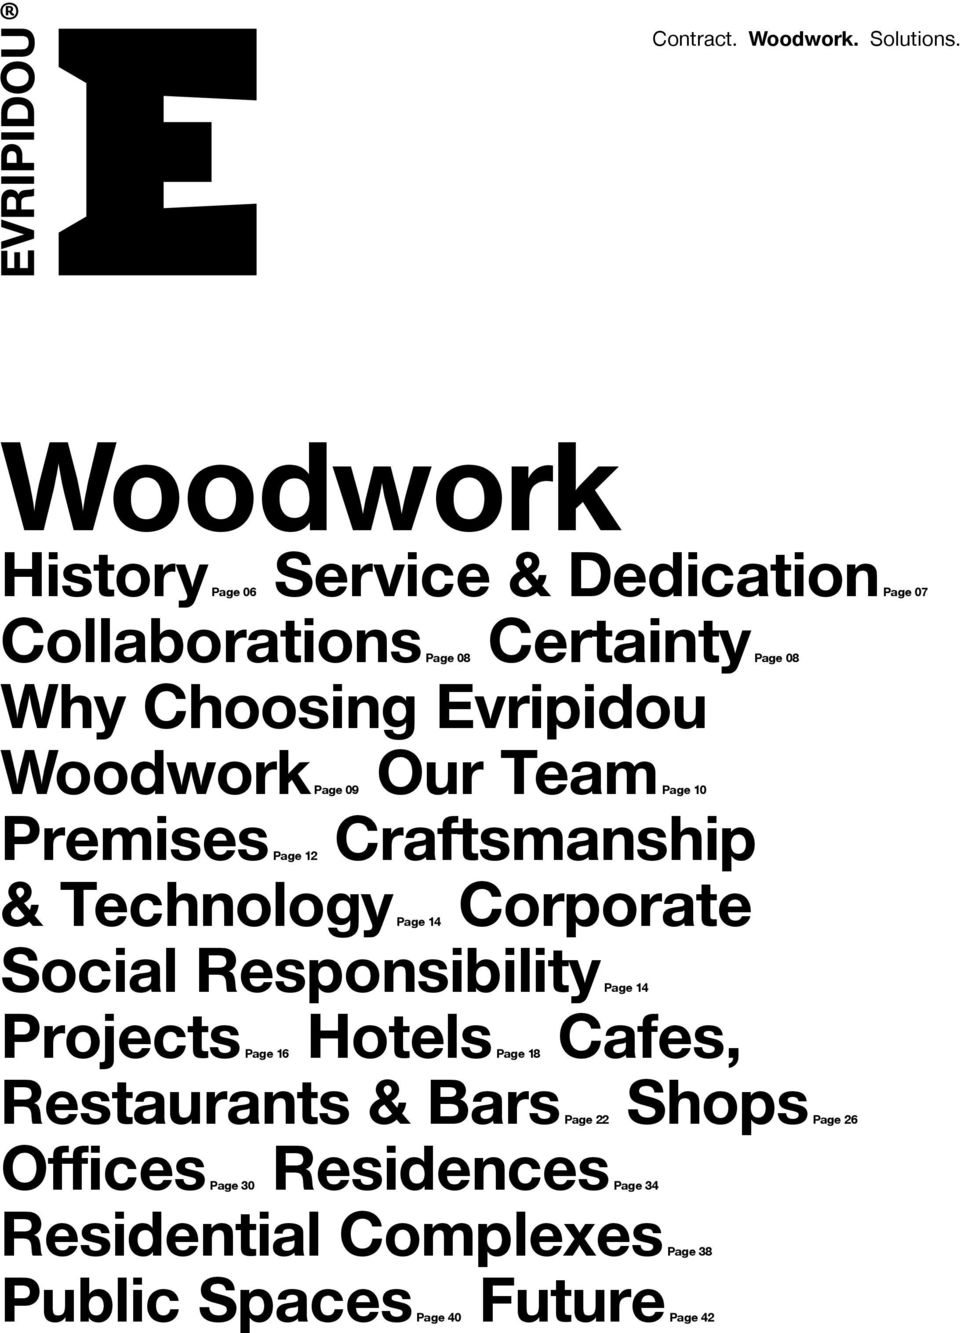 Woodwork Our Page 09 Premises Page Page 08 Team Page 10 Craftsmanship 12 & Technology Corporate Page 14 Social